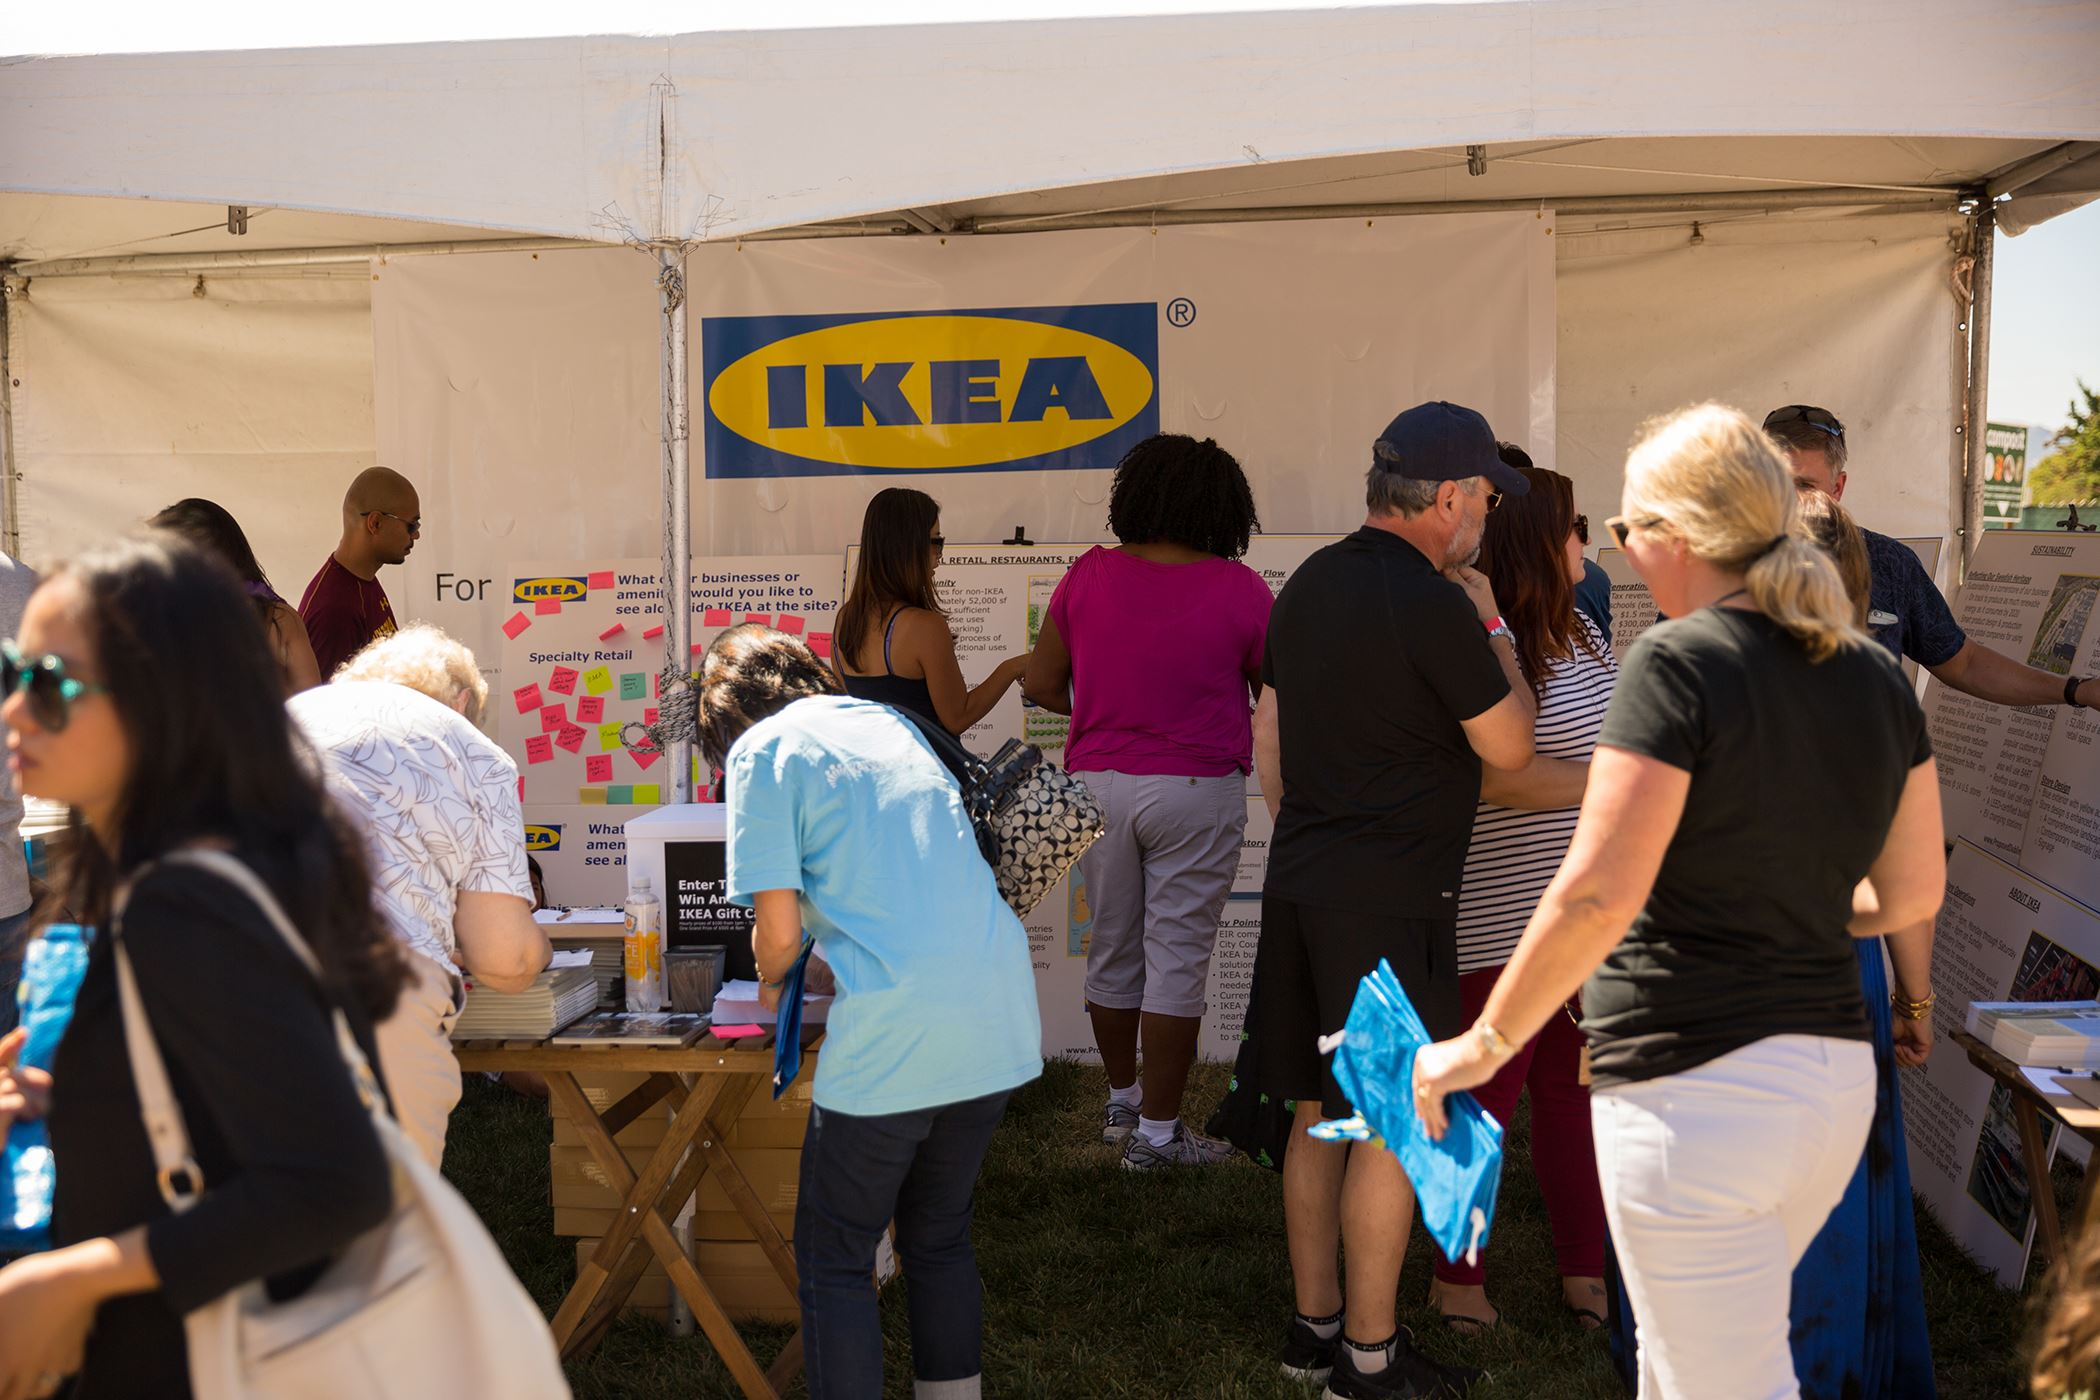 IKEA solicits community feedback_H5B4912-5x7